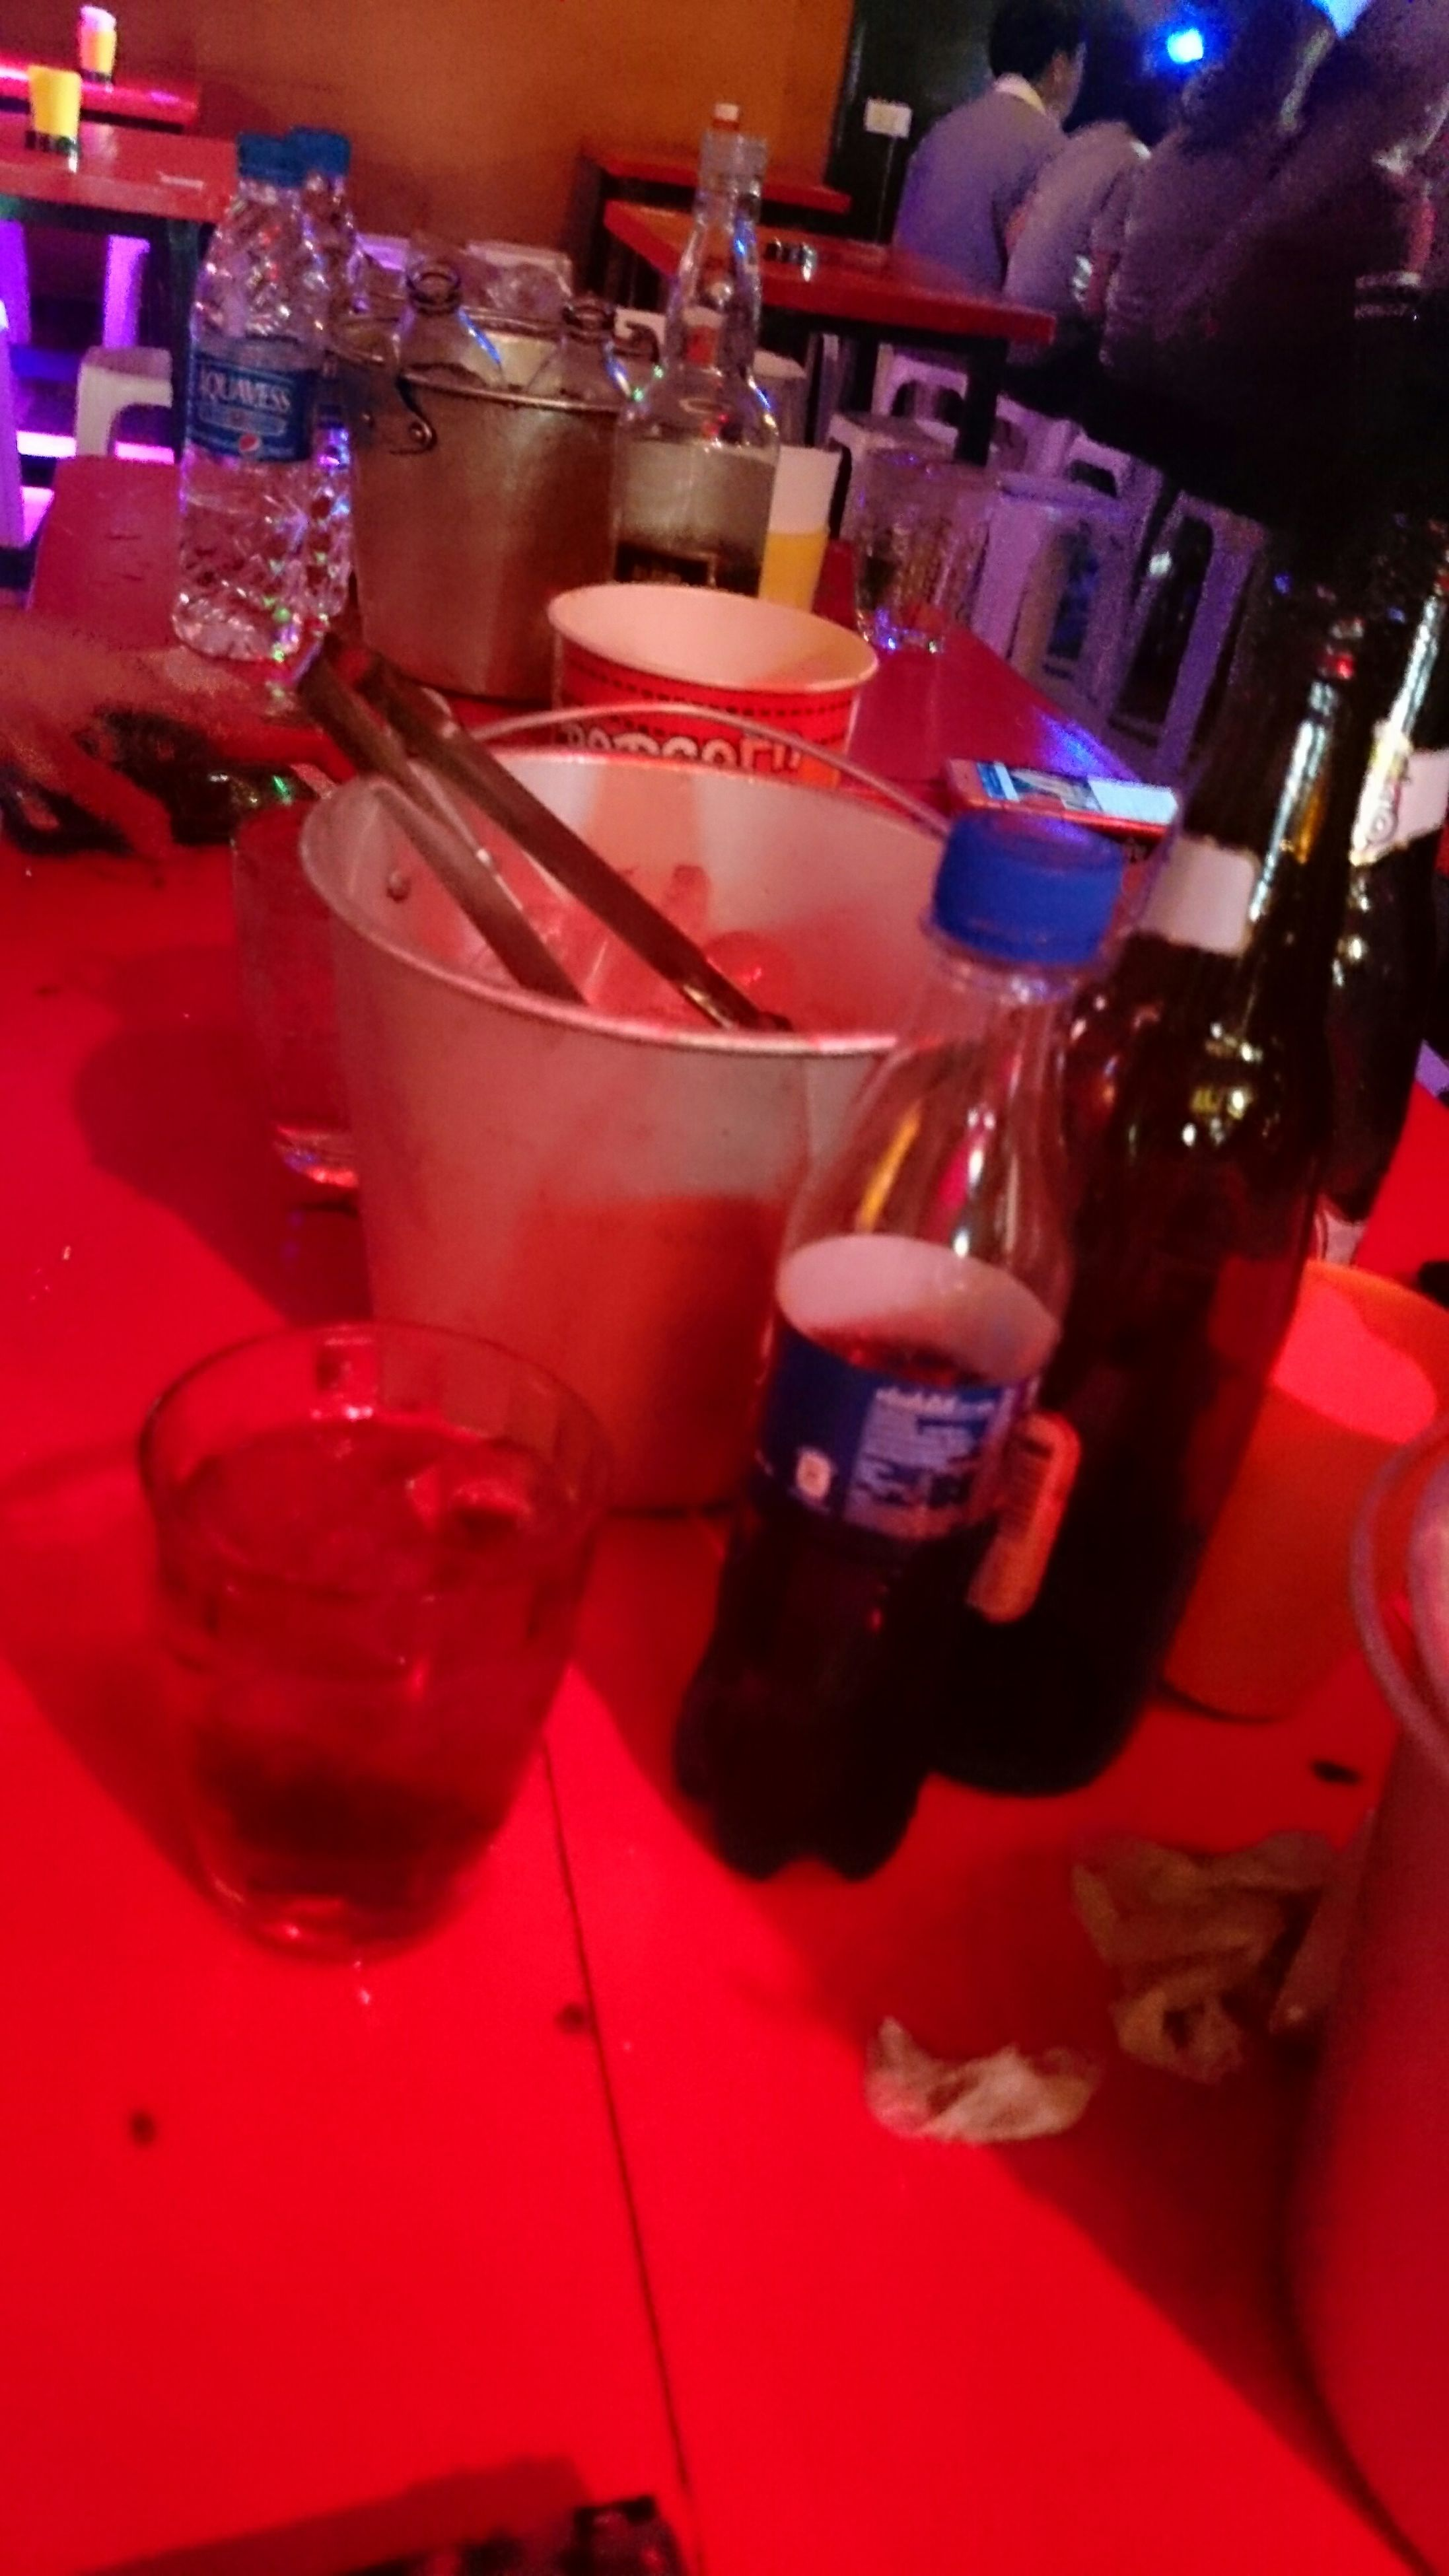 indoors, table, drinking glass, illuminated, drink, red, restaurant, wineglass, refreshment, glass - material, bottle, arts culture and entertainment, alcohol, still life, person, close-up, leisure activity, food and drink, home interior